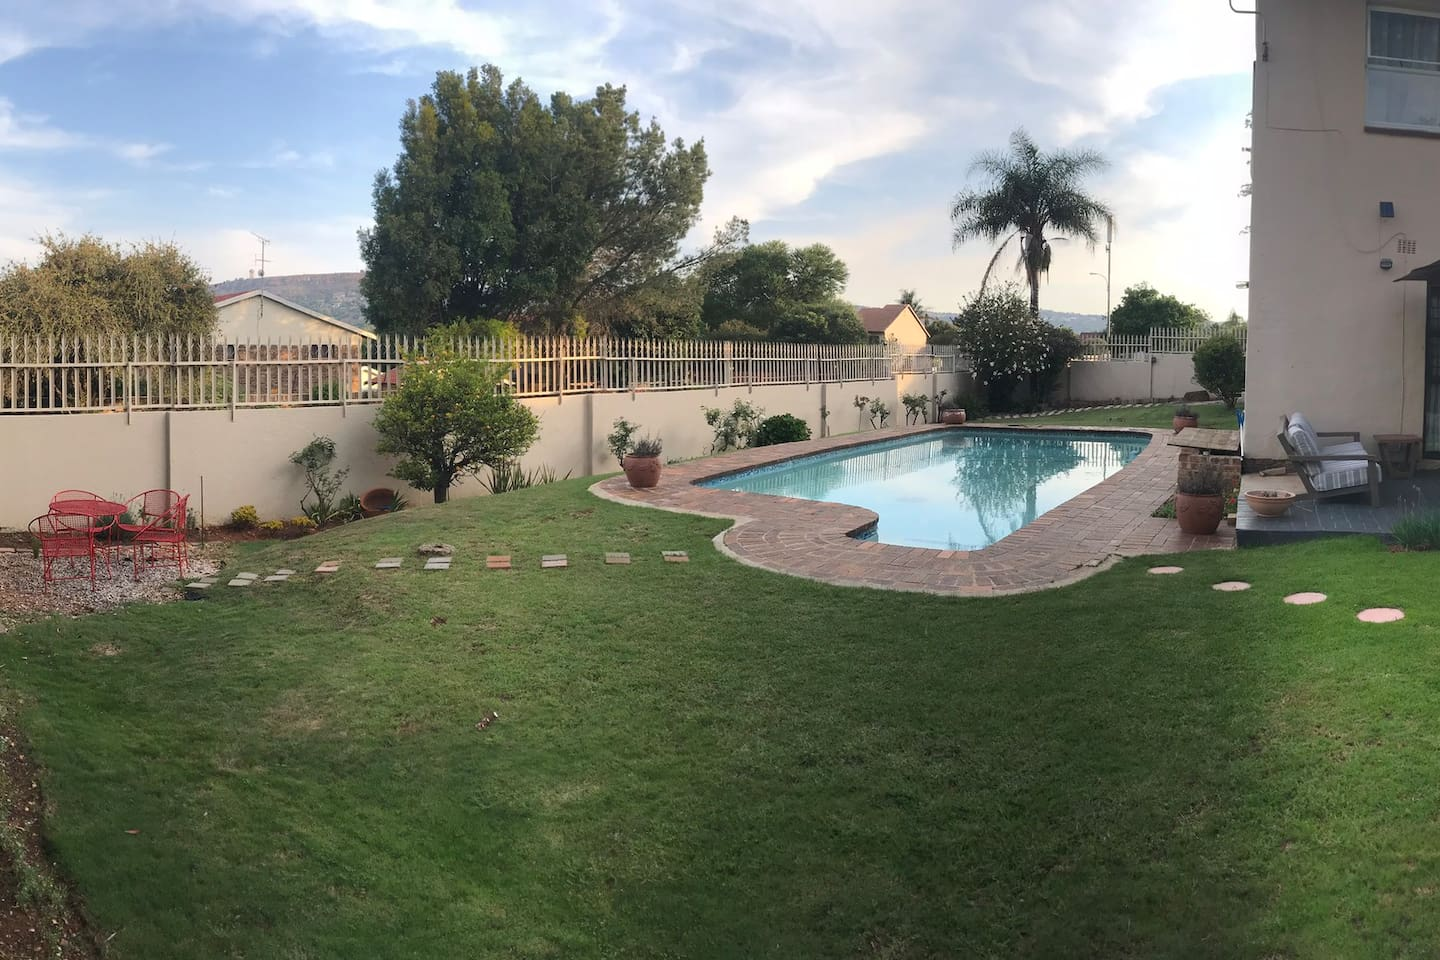 Spacious garden with comfortable patio furniture and pool for your private use